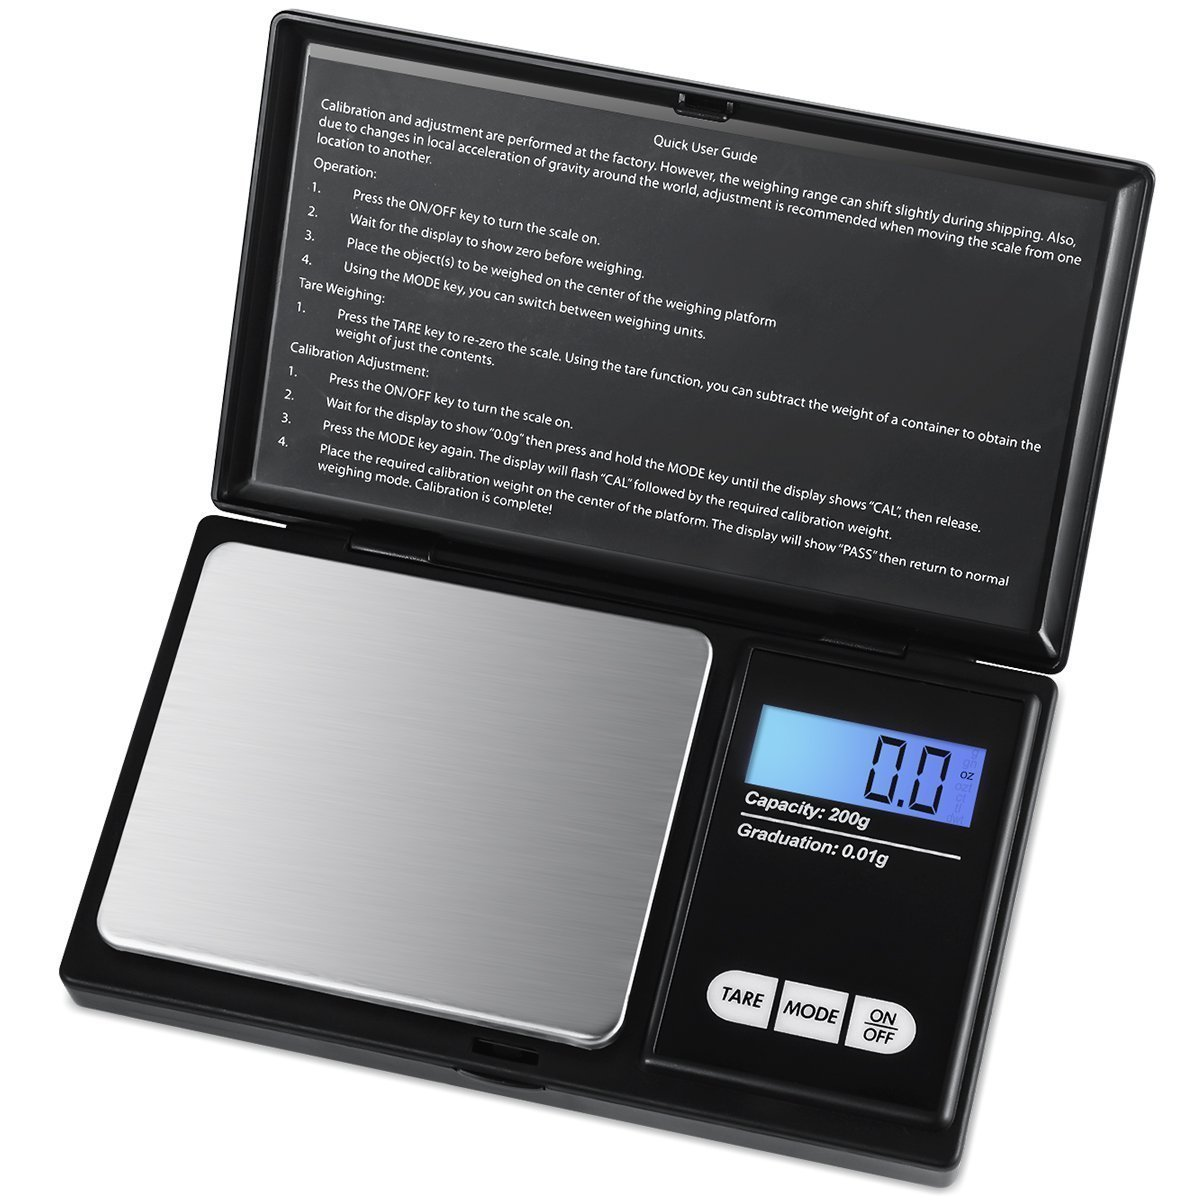 MoonKong Digital Mini Scale, 200g 0.01g/0.001oz Pocket Jewelry Scale, Electronic Smart Scale with 7 Units, LCD Backlit Display, Tare Function, Stainless Steel & Slim Design